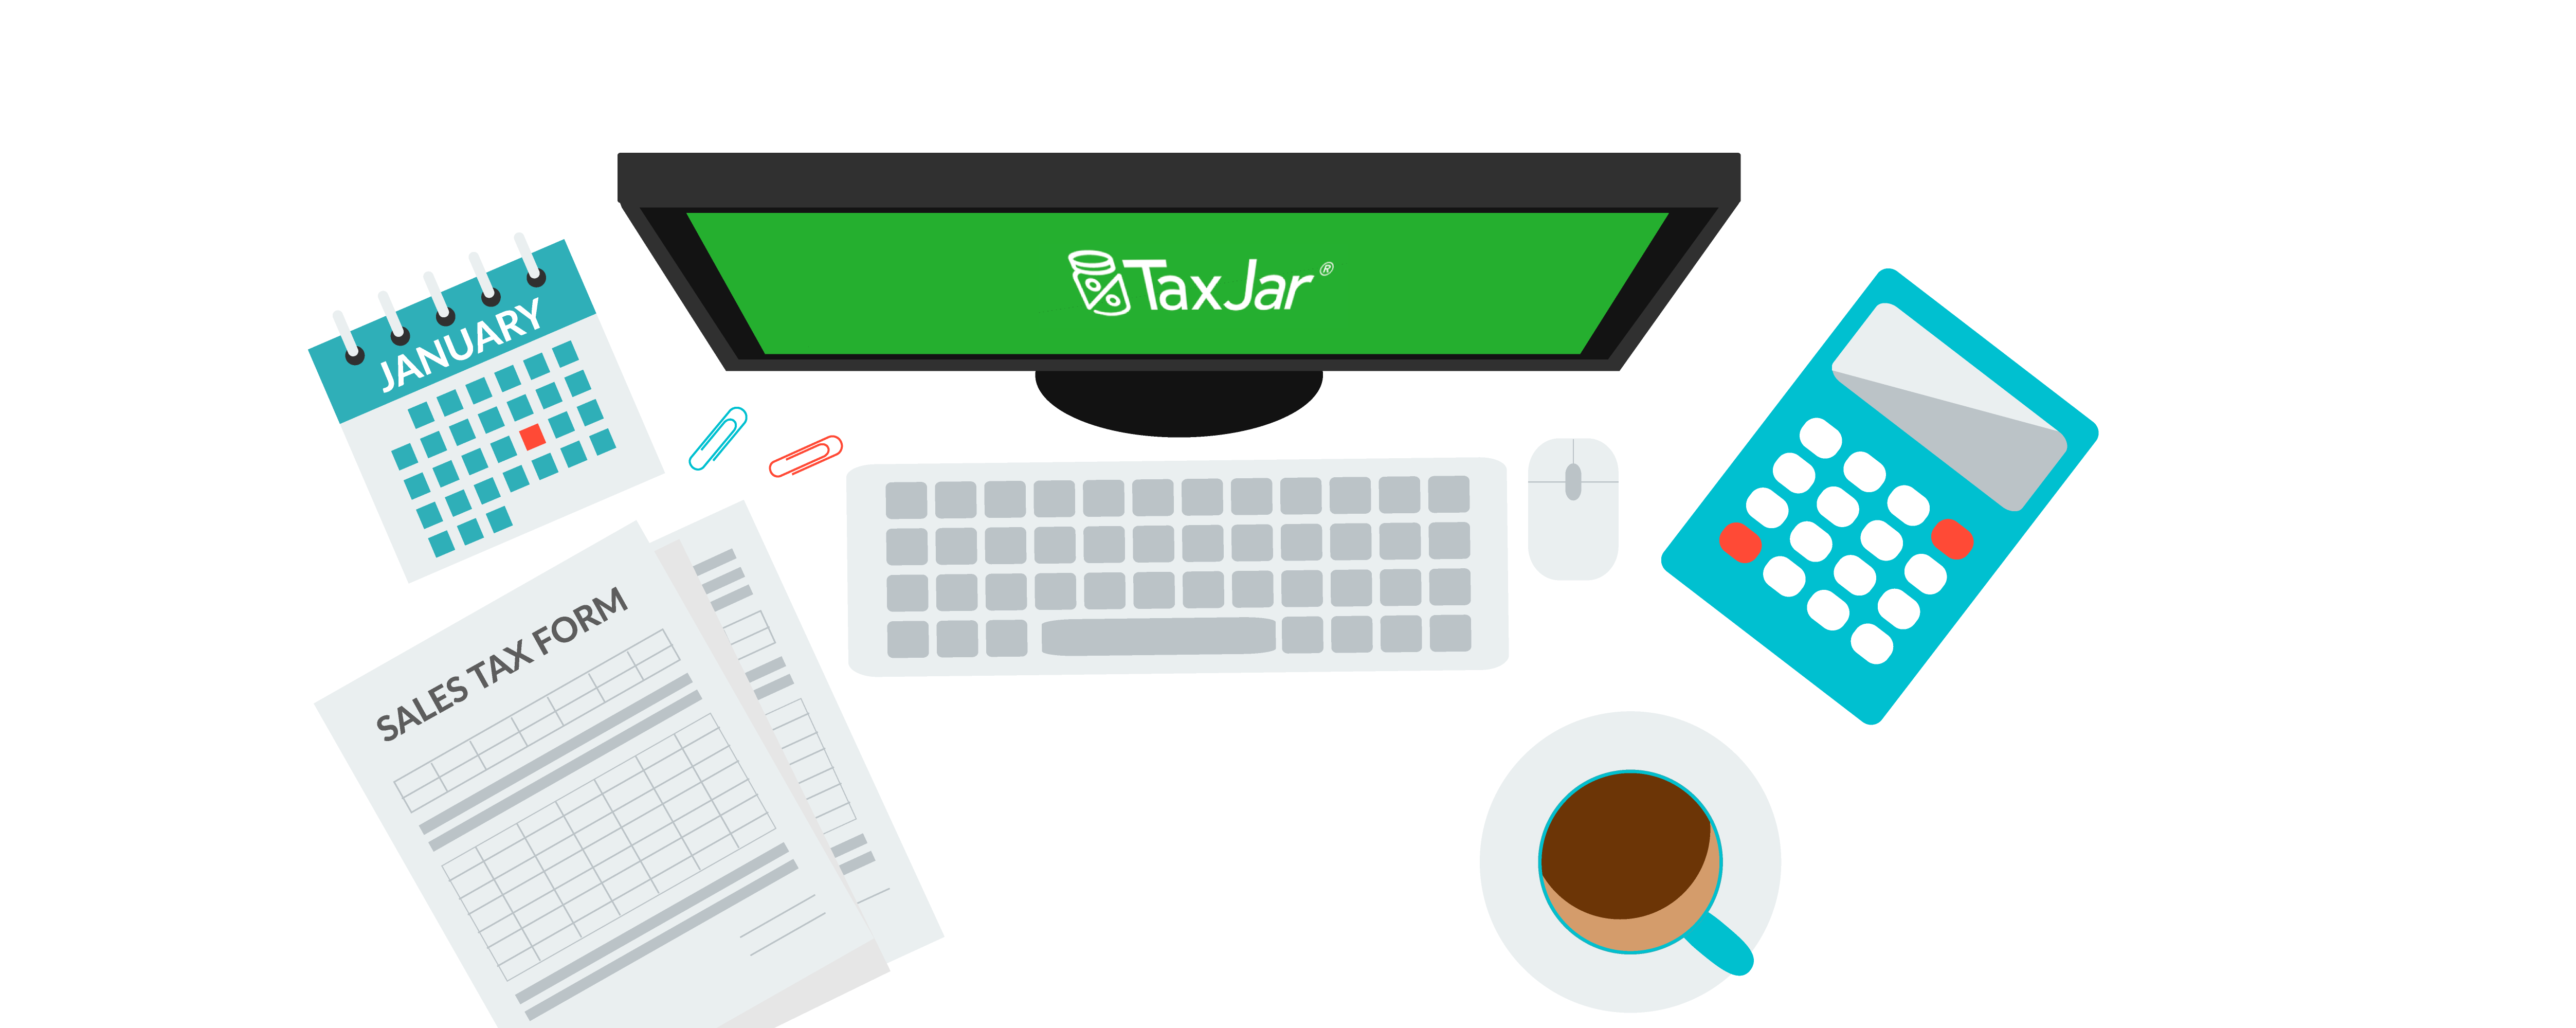 Want clipart sales tax. Simplified online for accountants